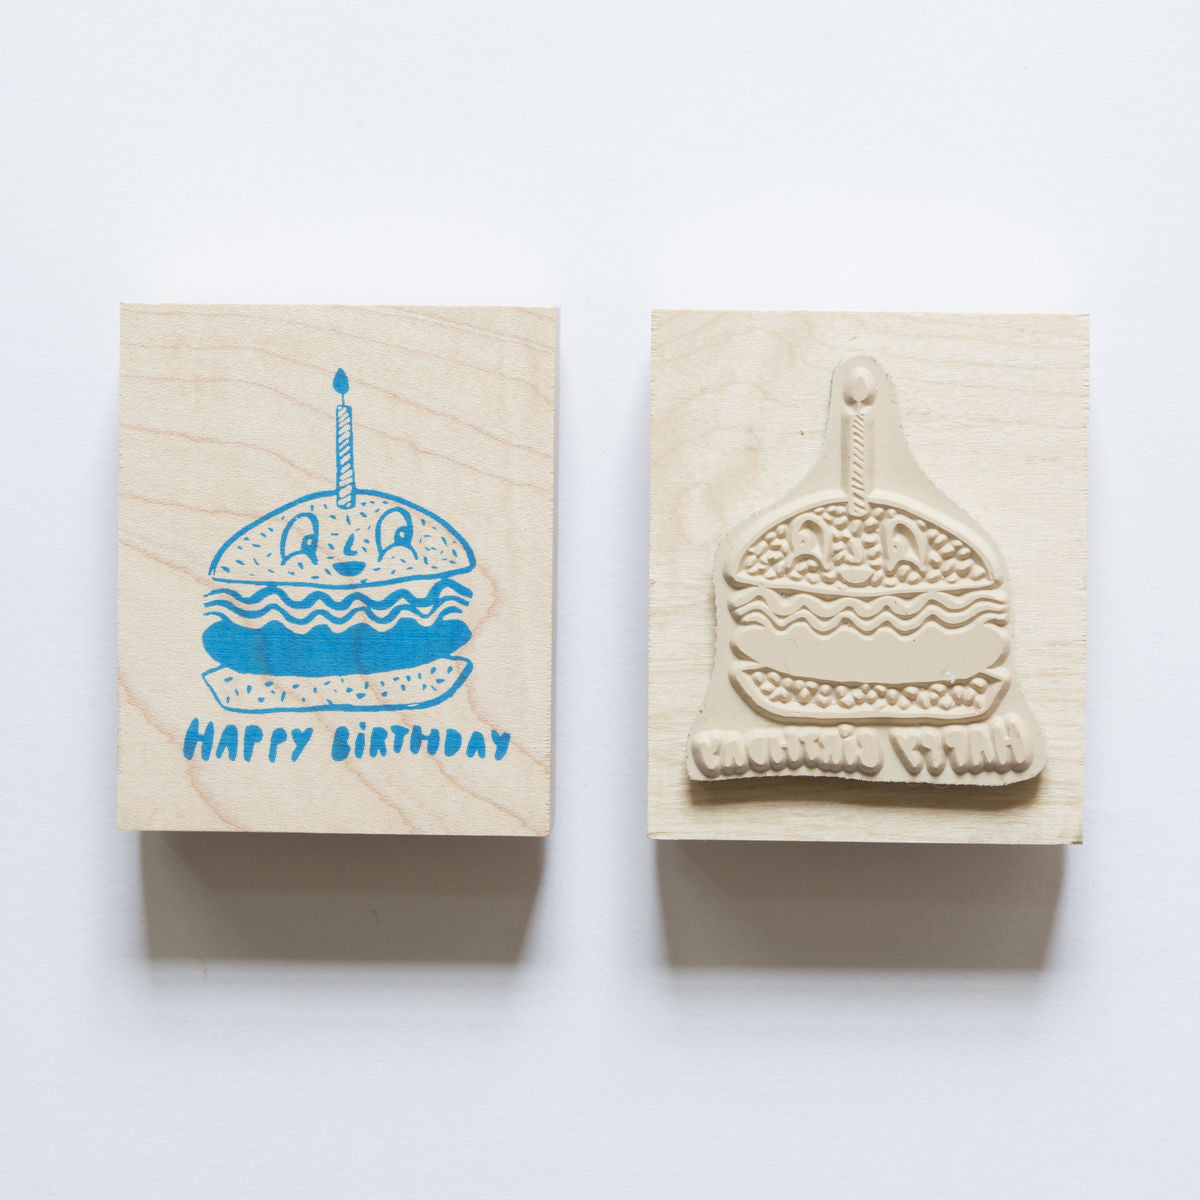 Happy Birthday wood mounted rubber stamp featuring a burger with birthday candle graphic.